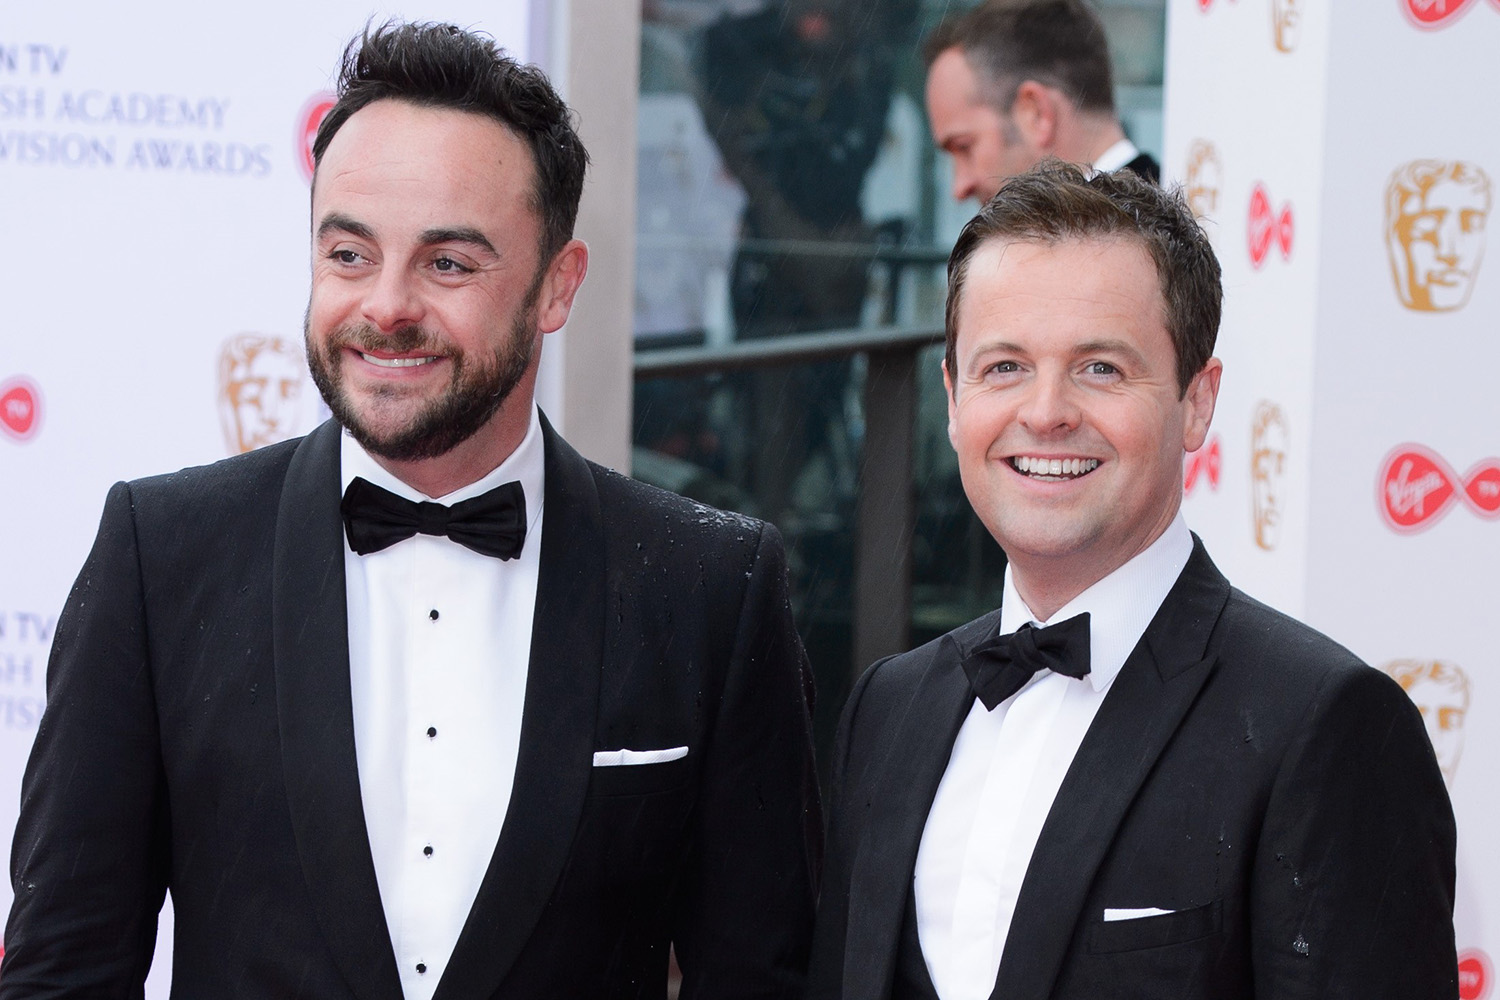 Fans insist Ant McPartlin and Dec Donnelly have 'made their lockdown better' with hilarious video